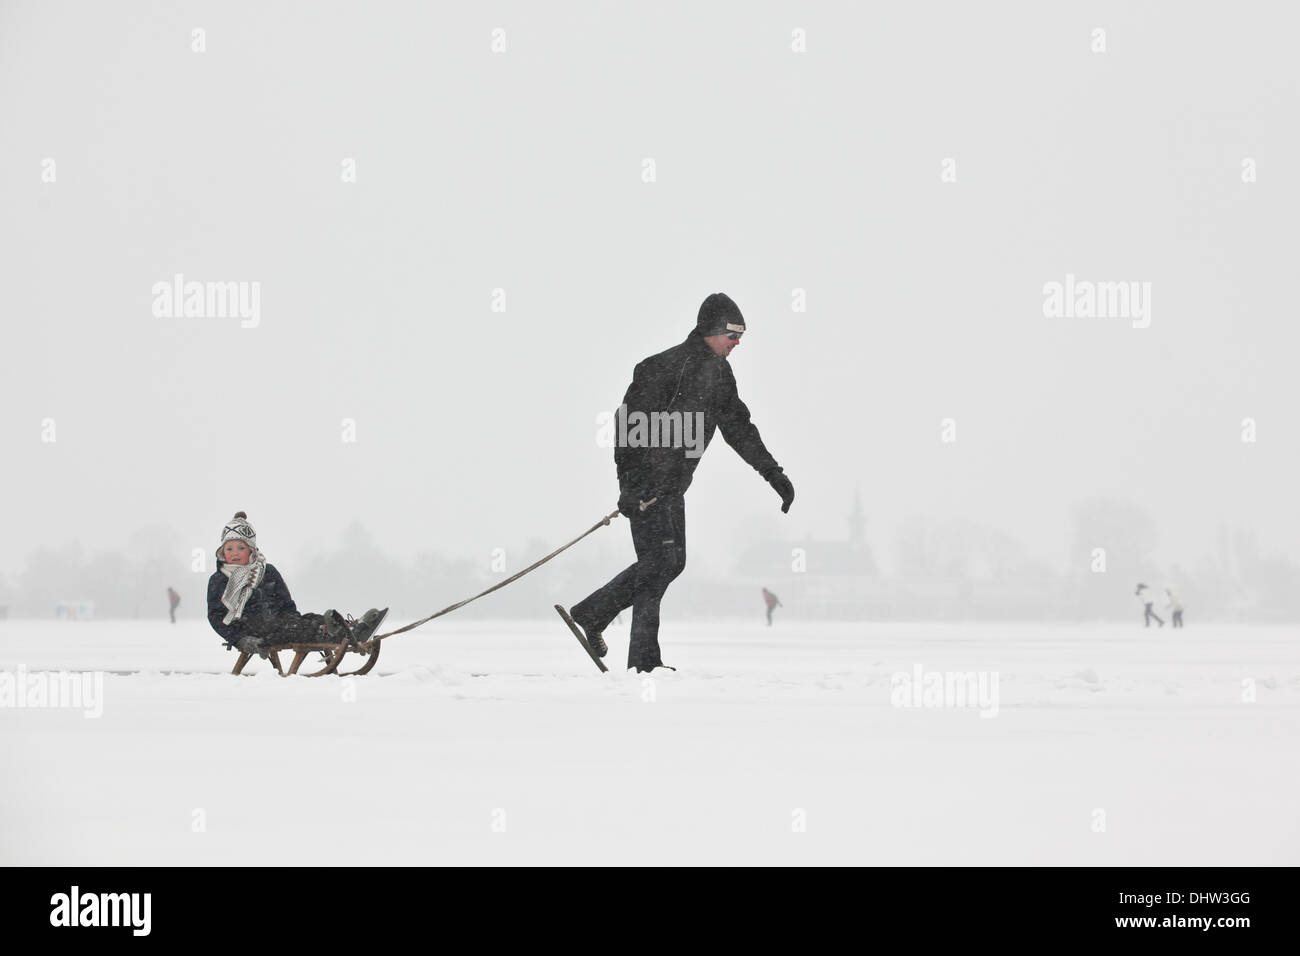 Netherlands, Loosdrecht, Lakes called Loosdrechtse Plassen. Winter. Father ice skating with son on sledge - Stock Image